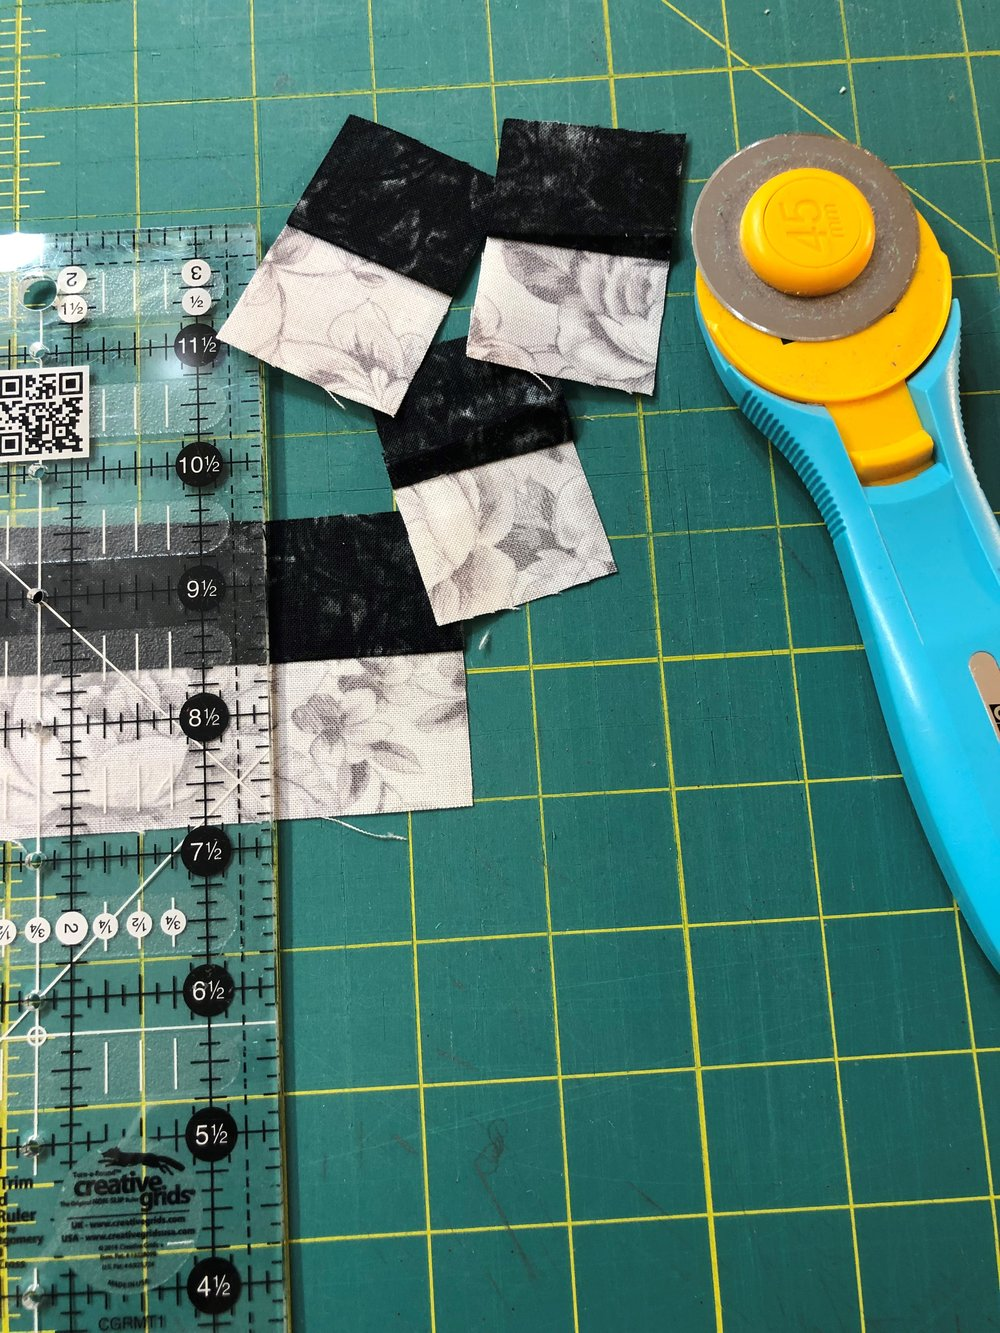 - You then take your pressed black and gray strips to your cutting board and cut 1 ½ small rectangles.